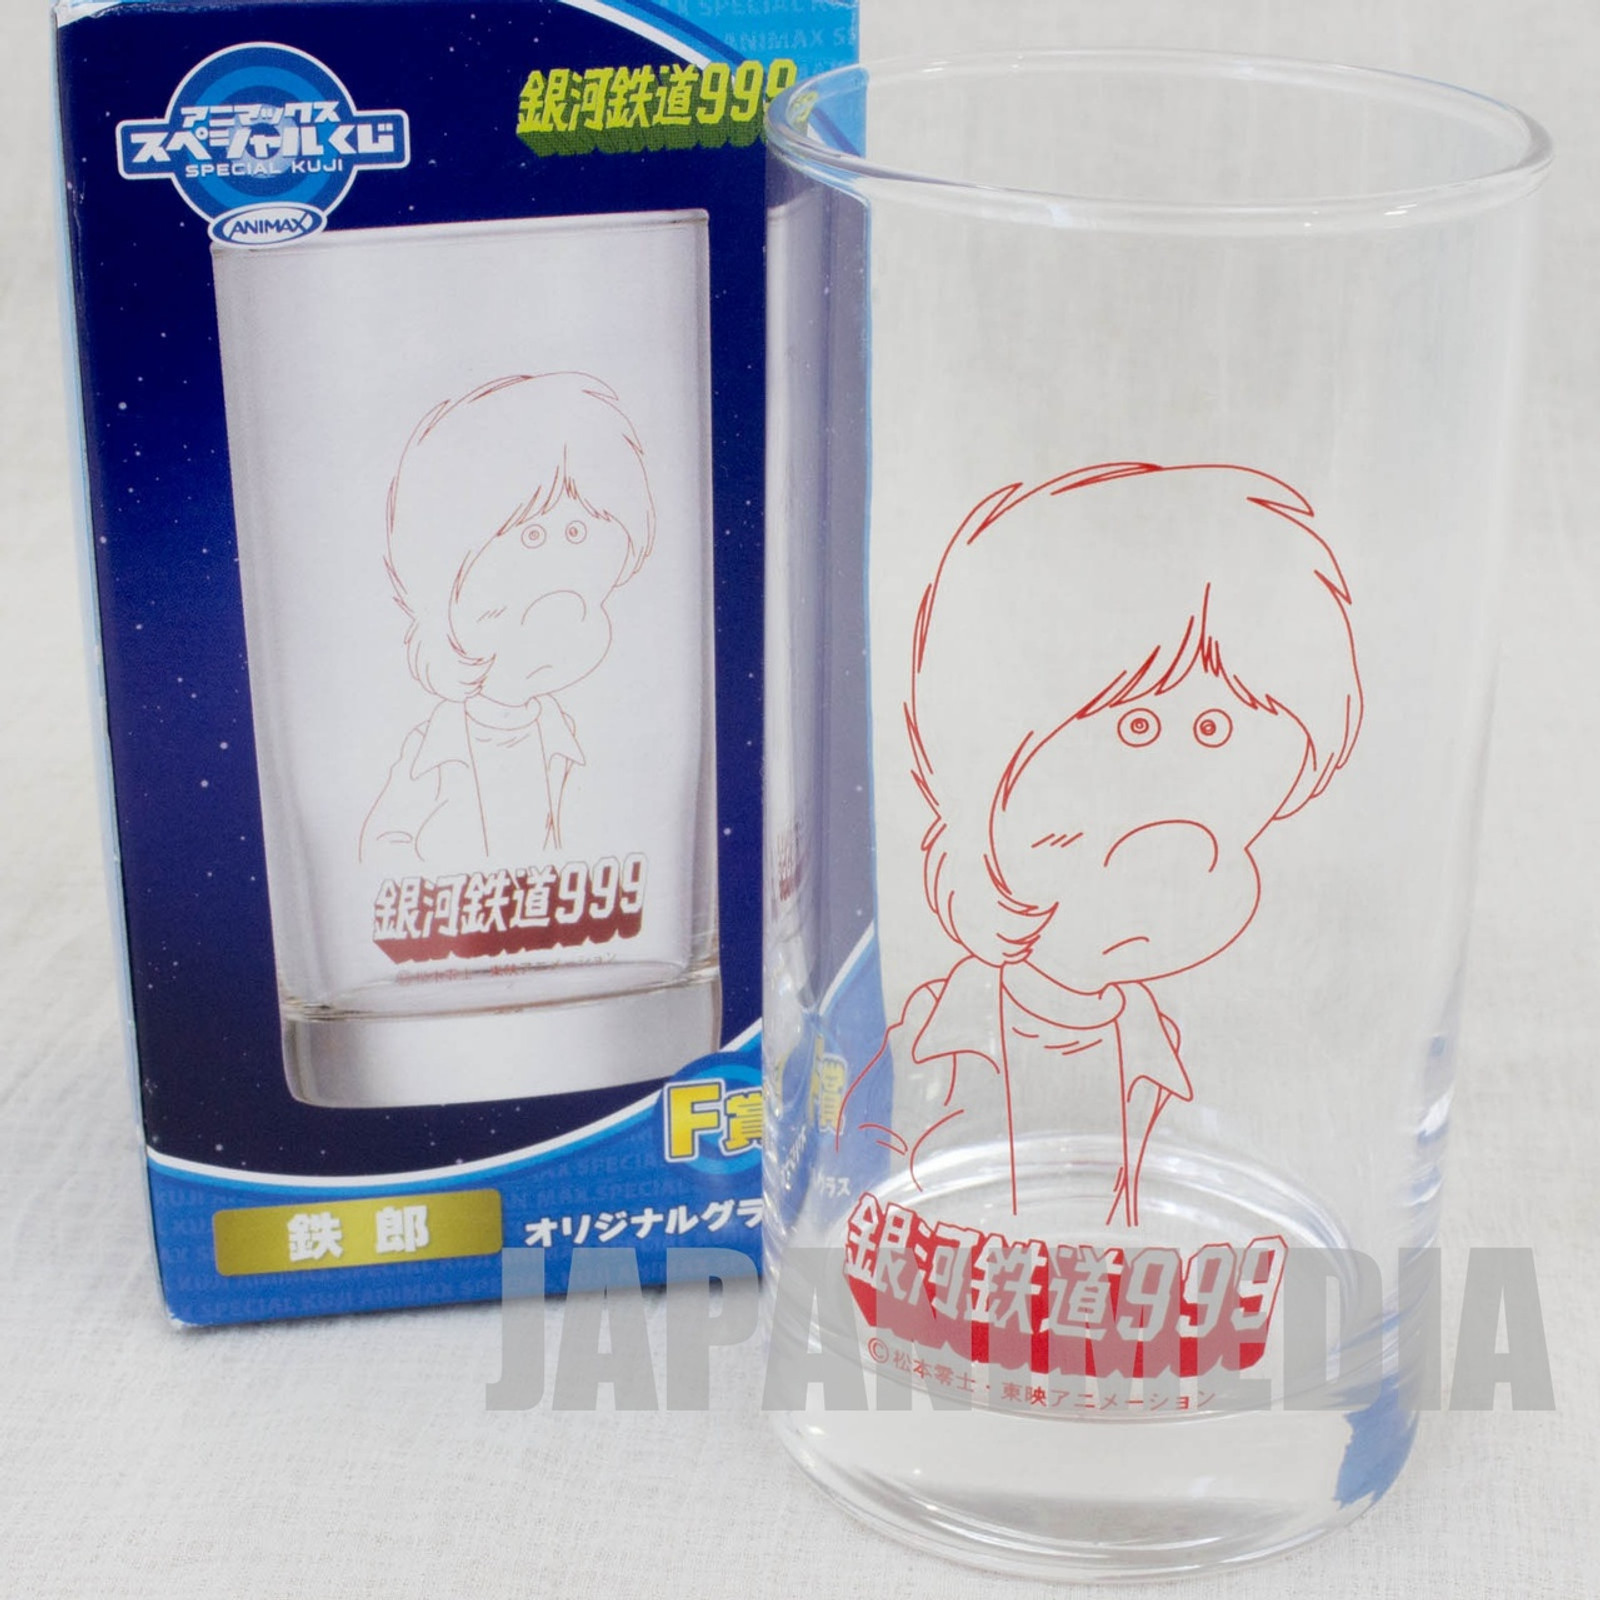 Galaxy Express 999 Tetsuro Glass Animax Special Kuji JAPAN ANIME